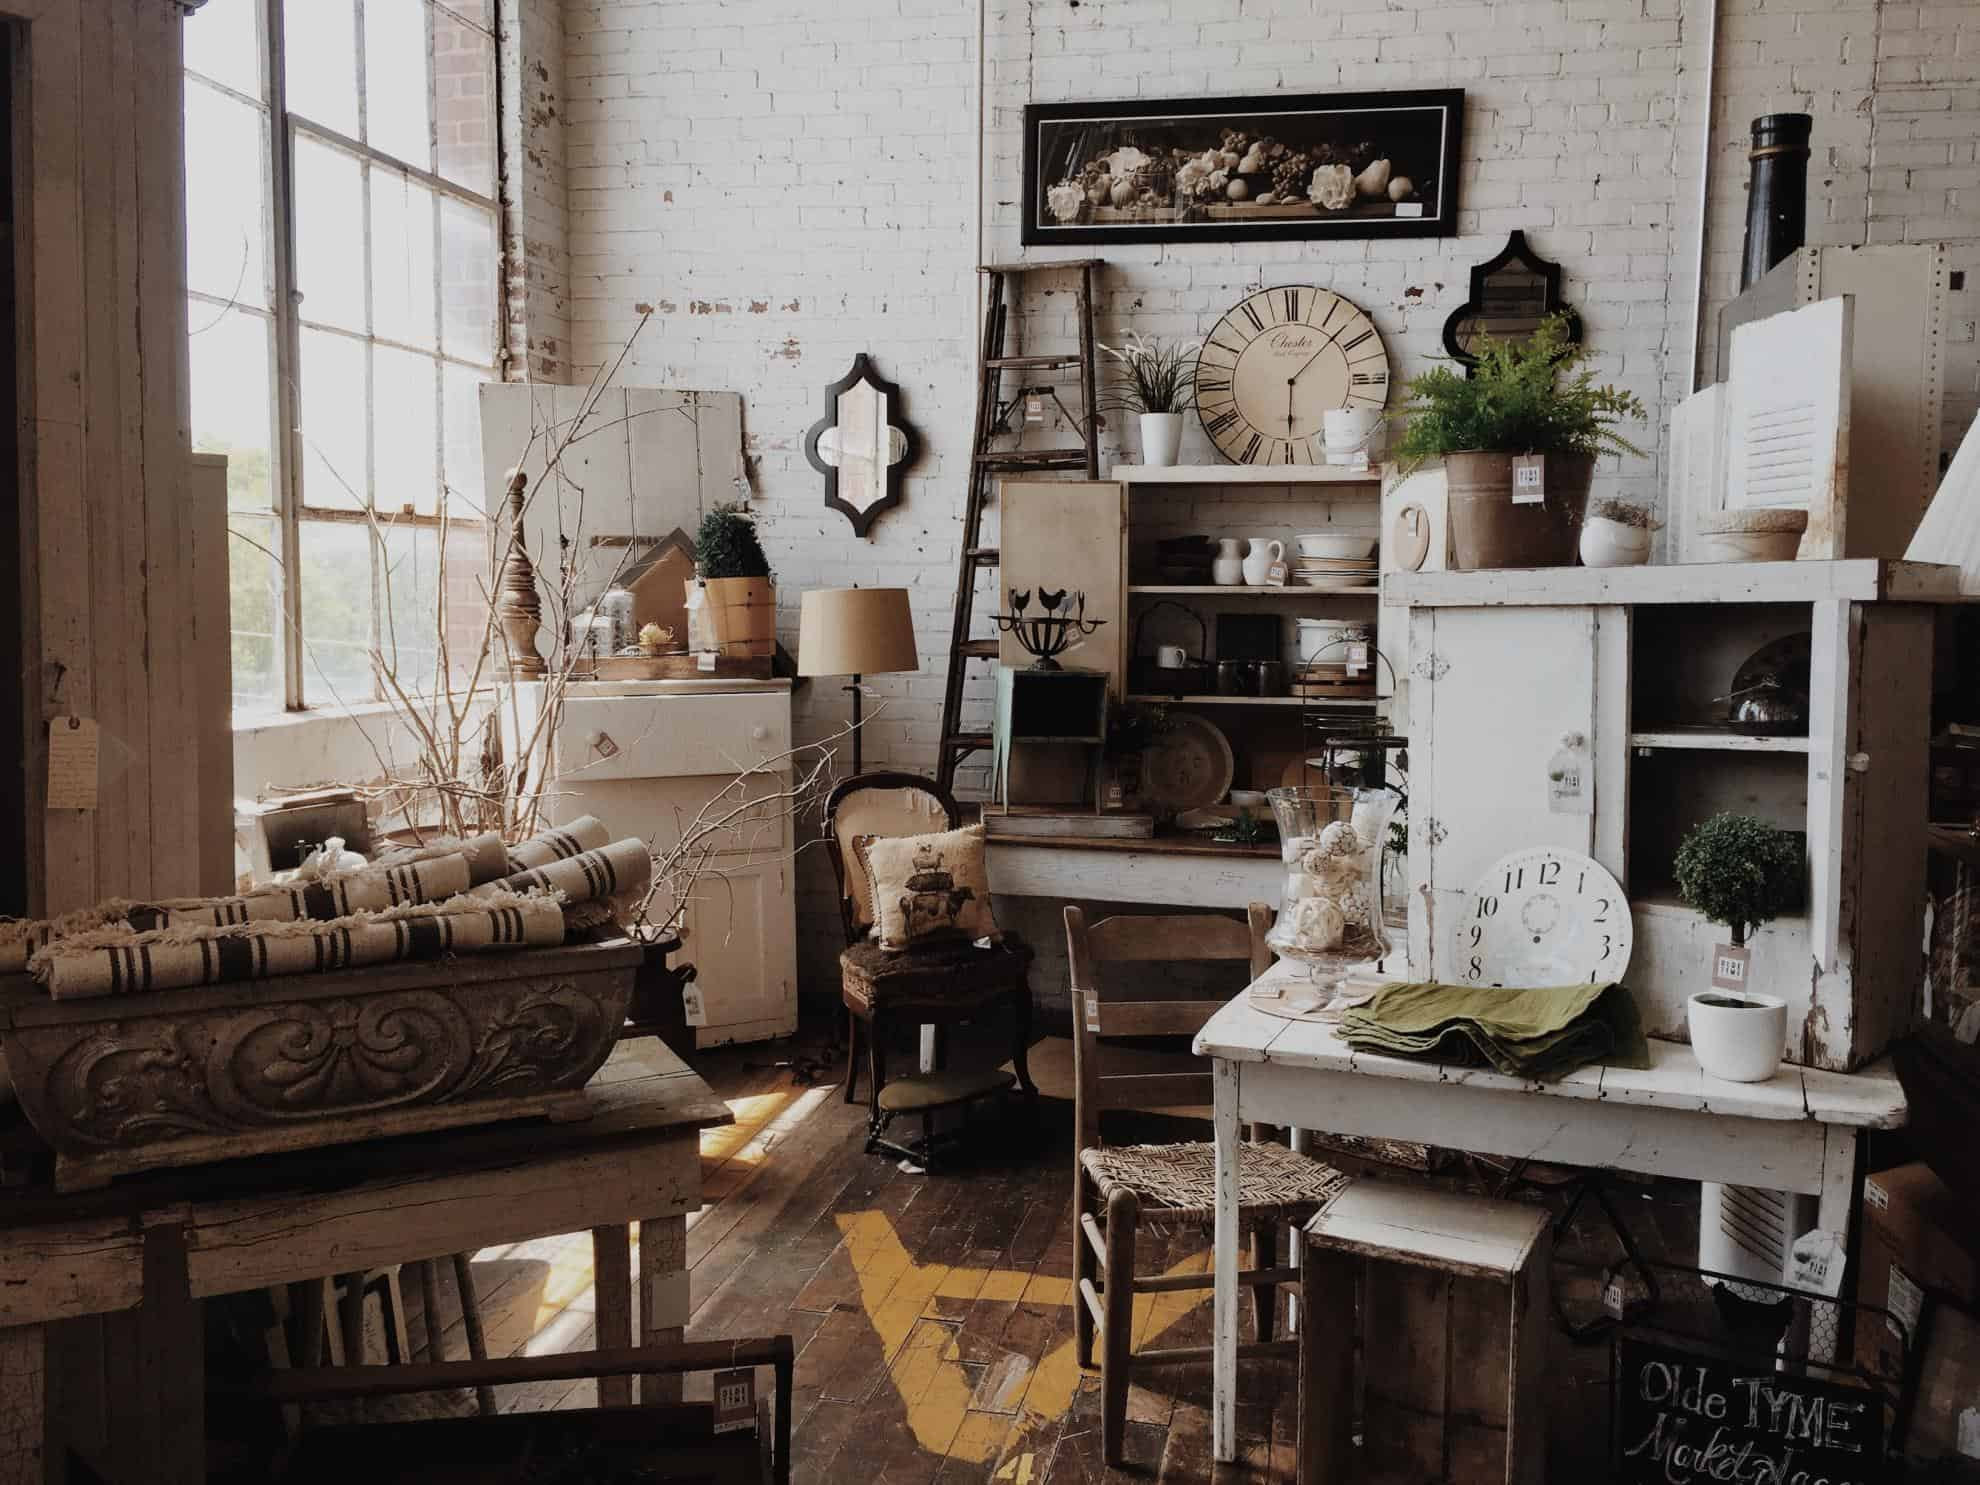 Vintage-Friendly Home Decor Ideas To Dress Up Your Space